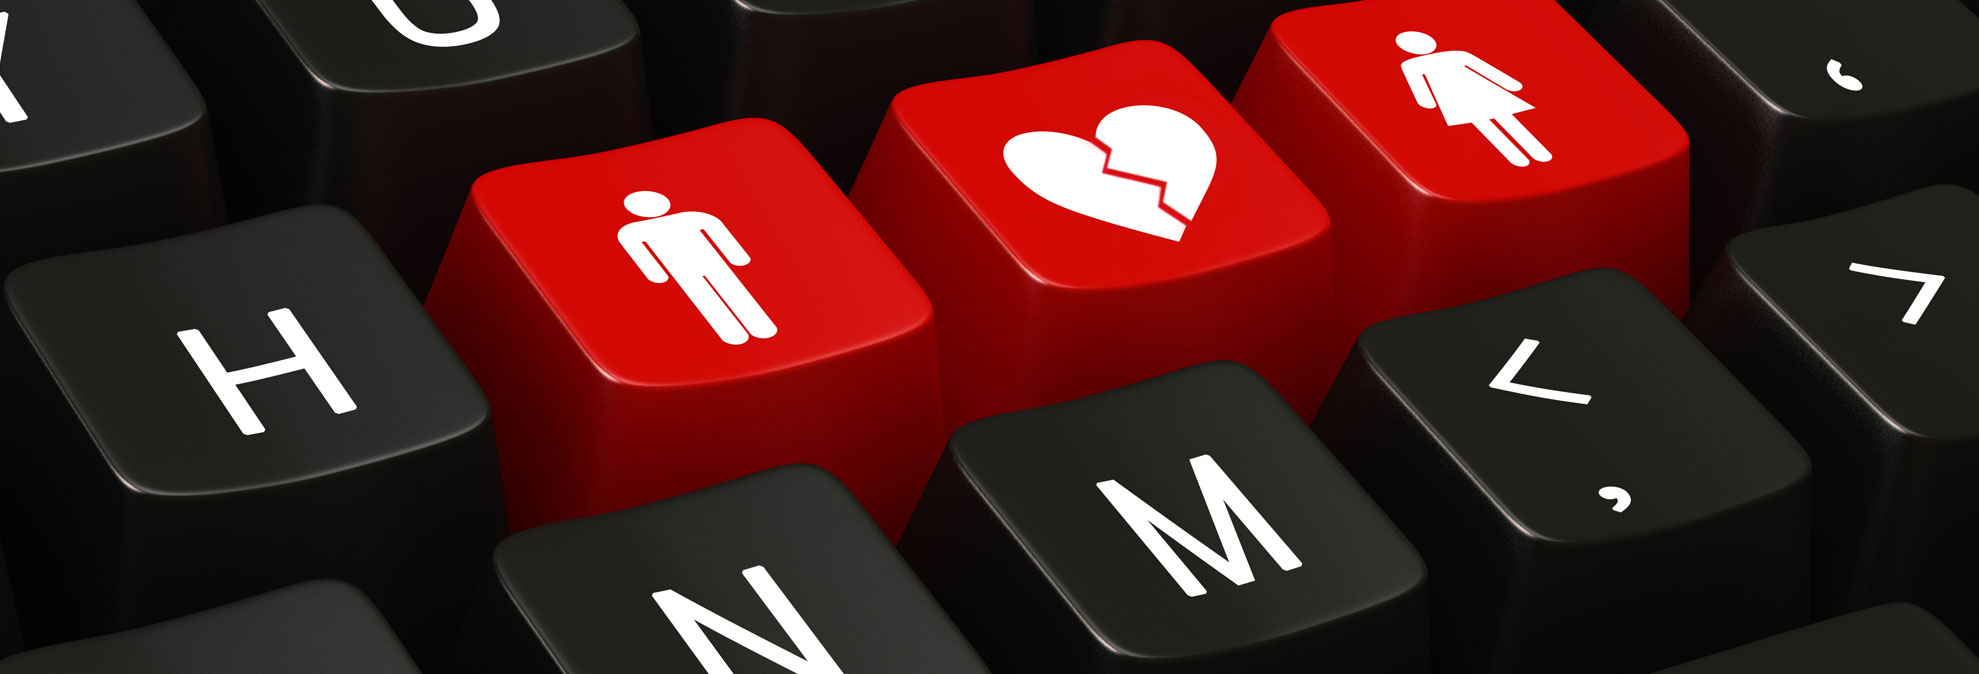 The best online dating sites consumer reports